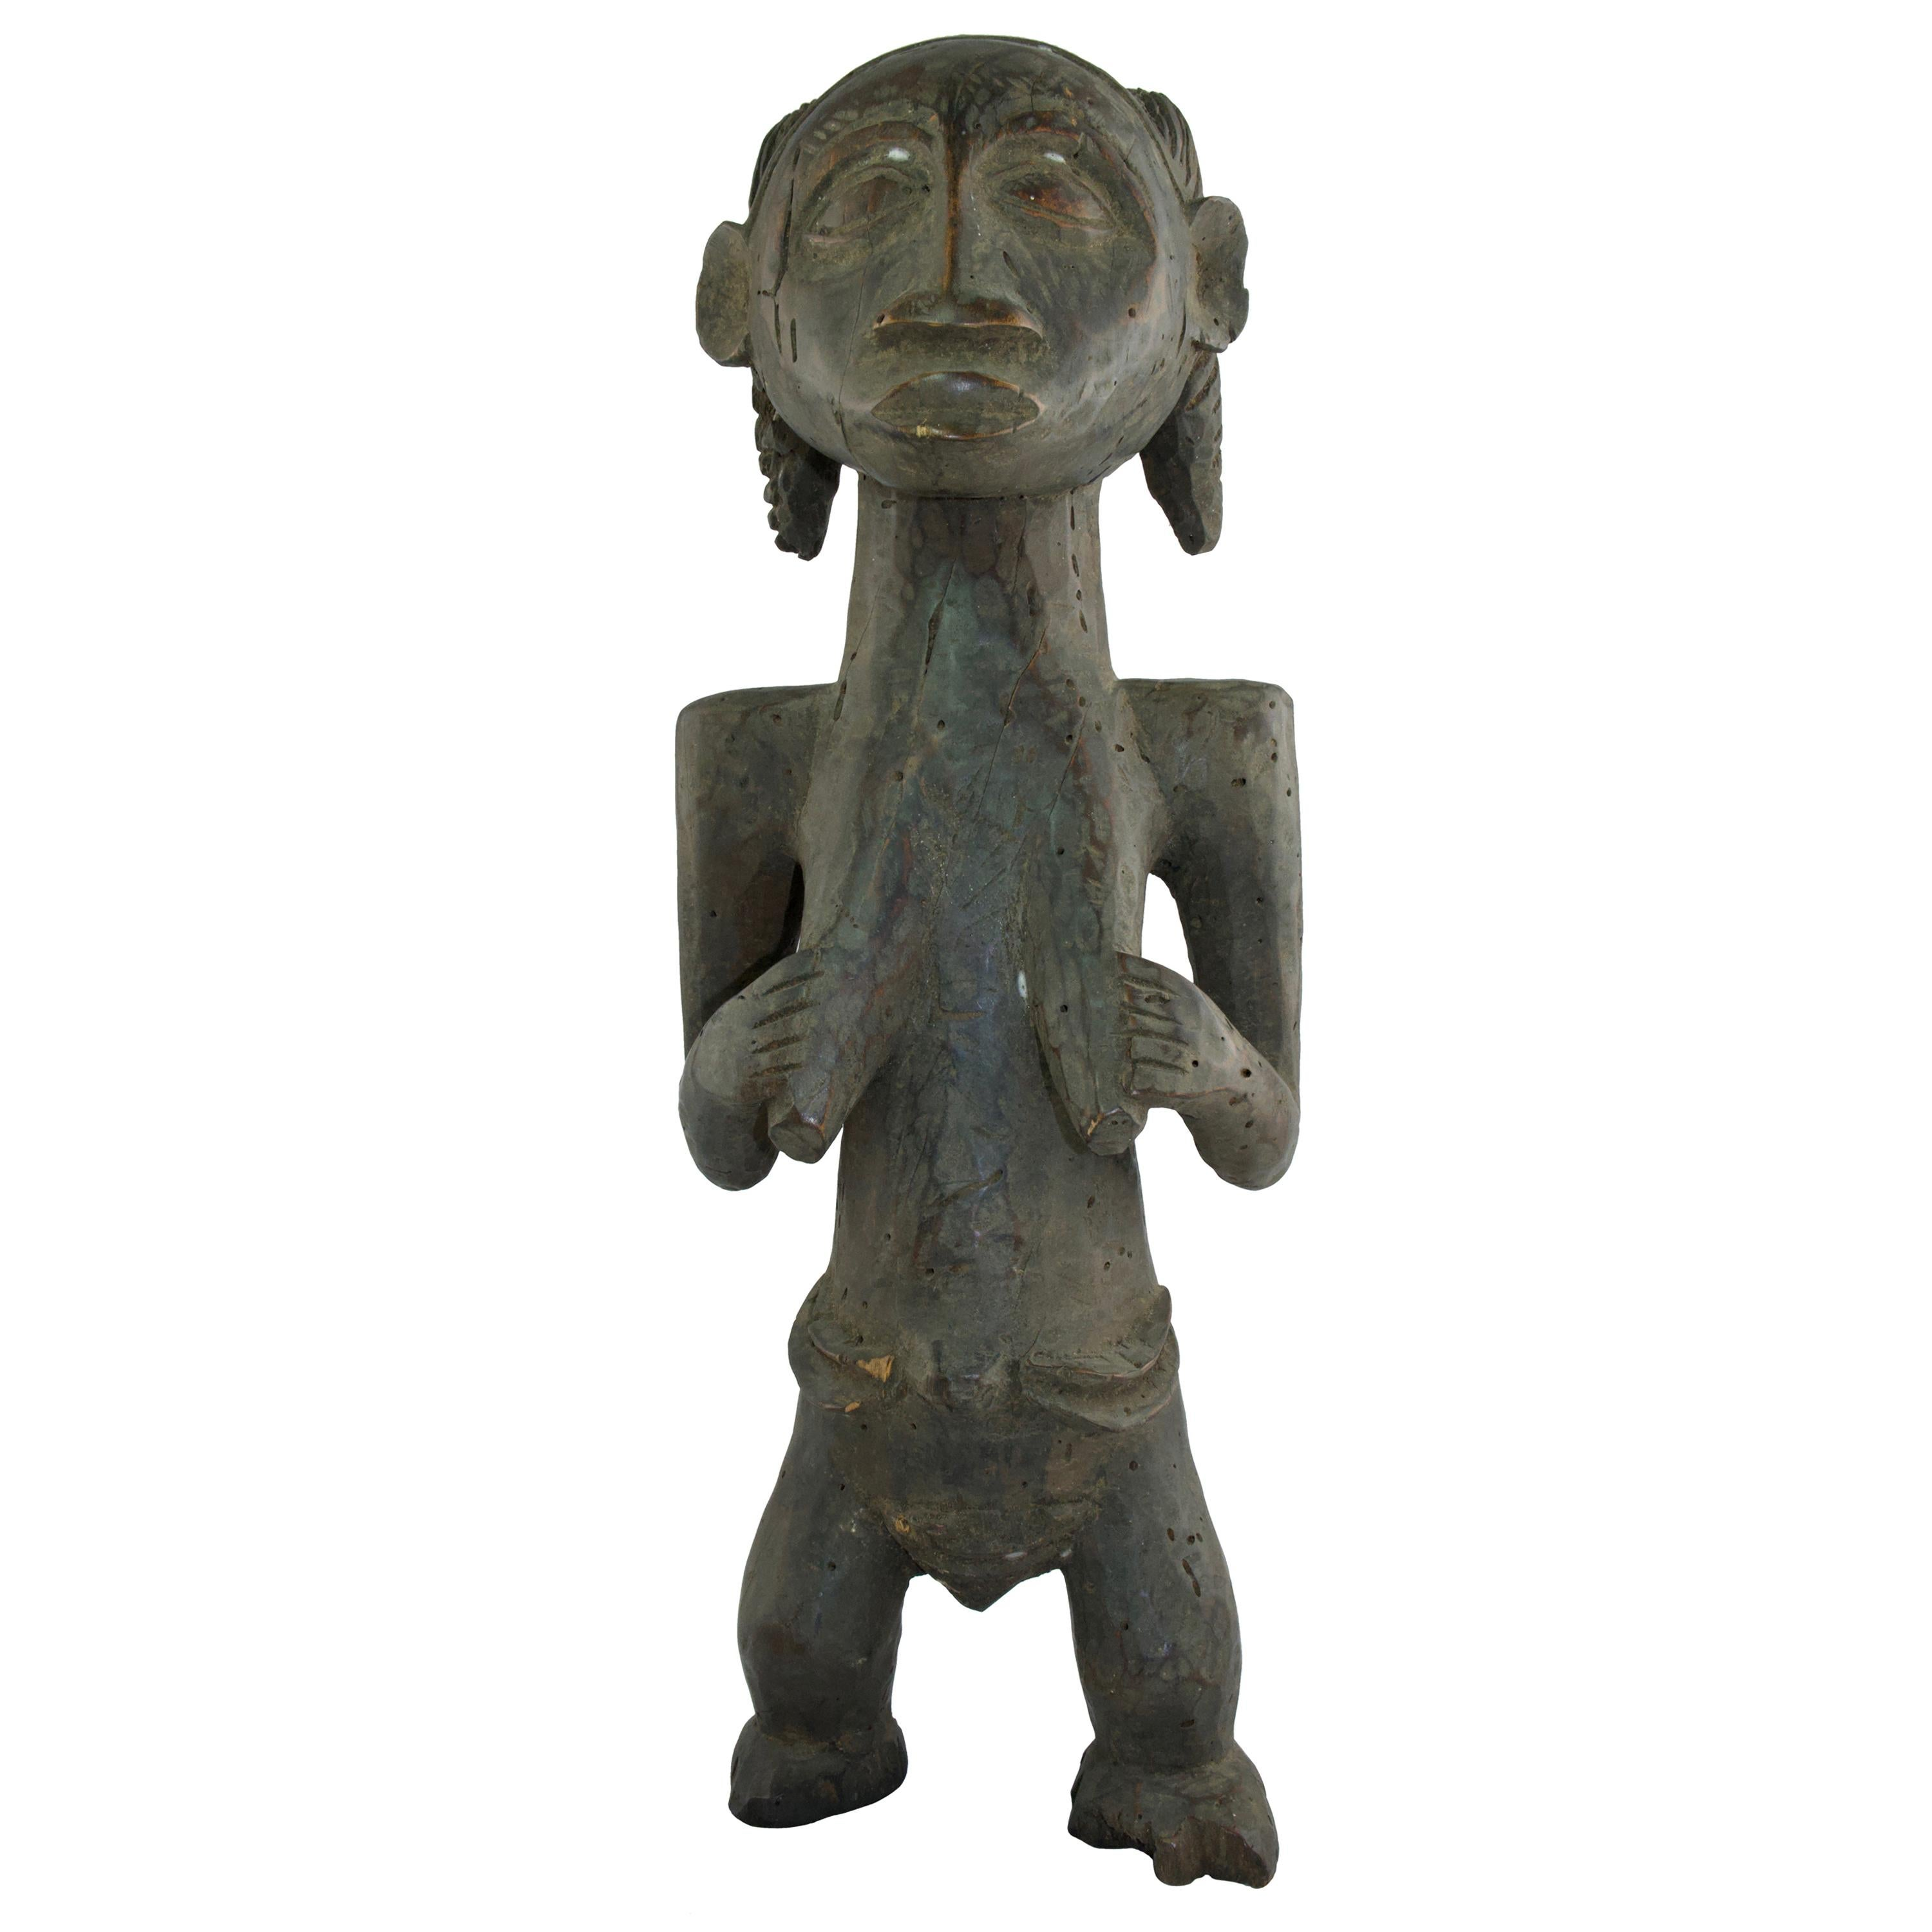 Wooden Sculpture, Hemba Style, 20th C